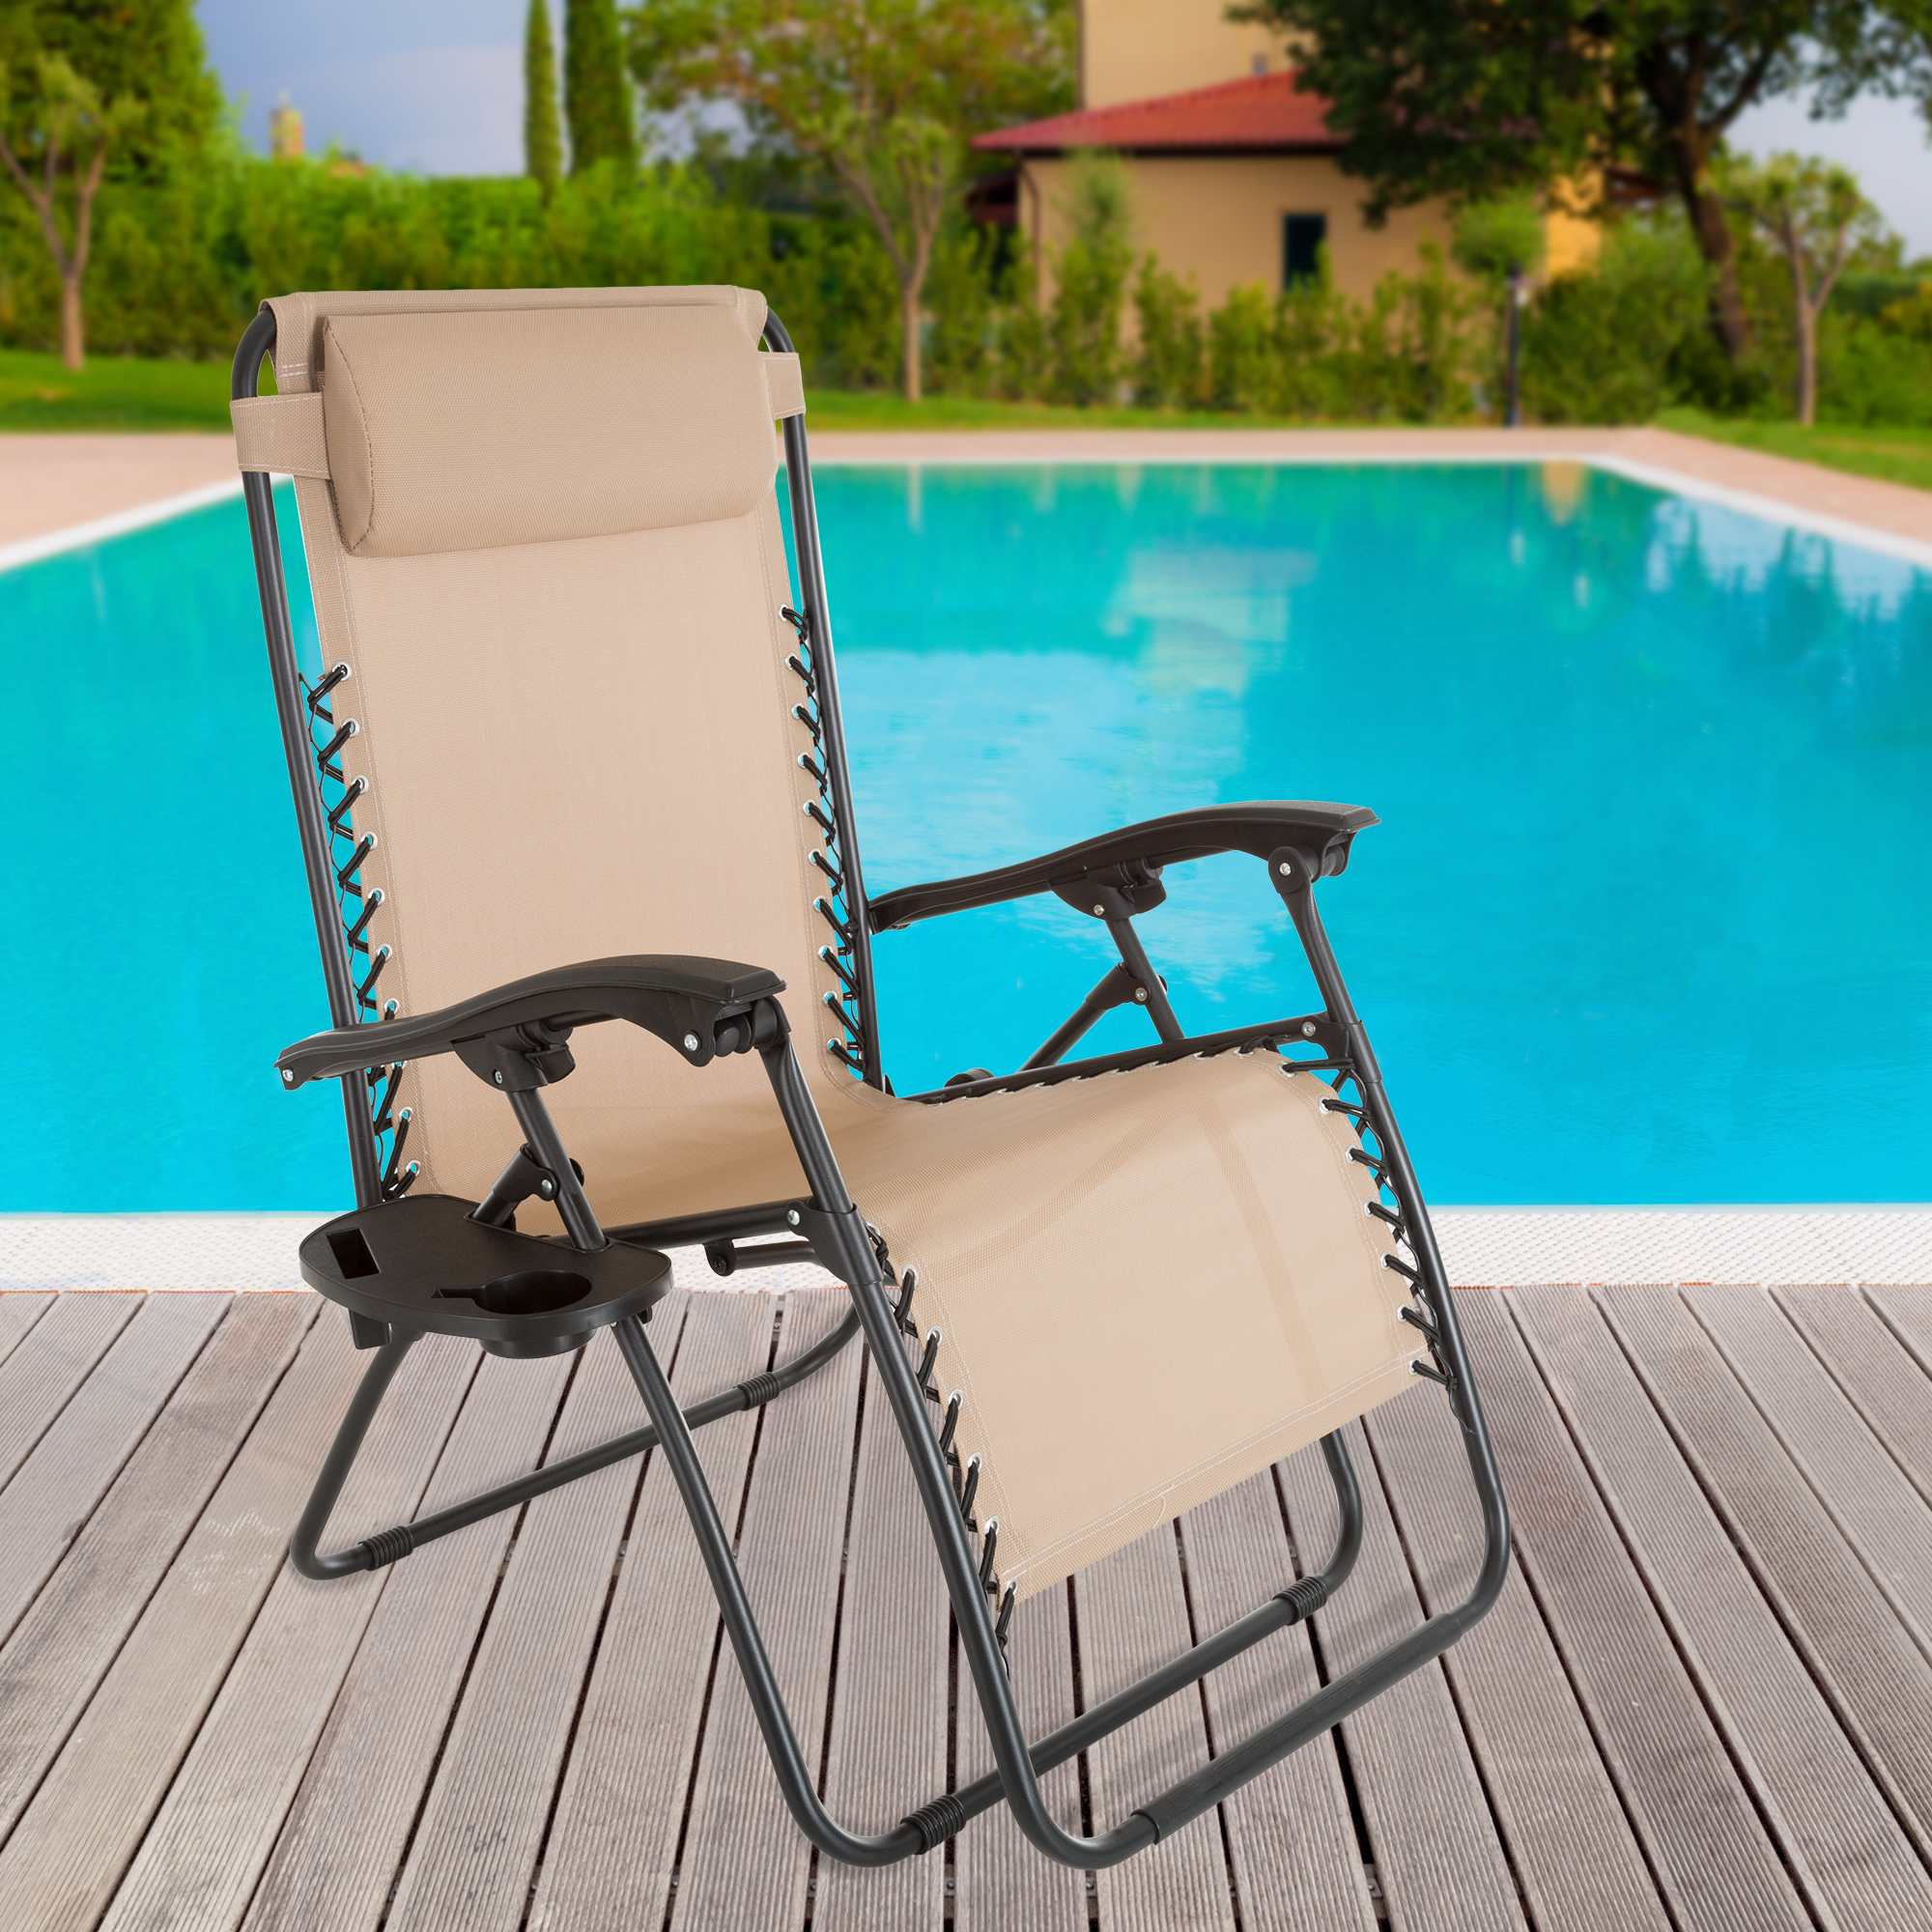 Zero Gravity Outdoor Reclining Foldable Lounge Chair With Pillow Headrest  And Cup Holder For Patio Beach